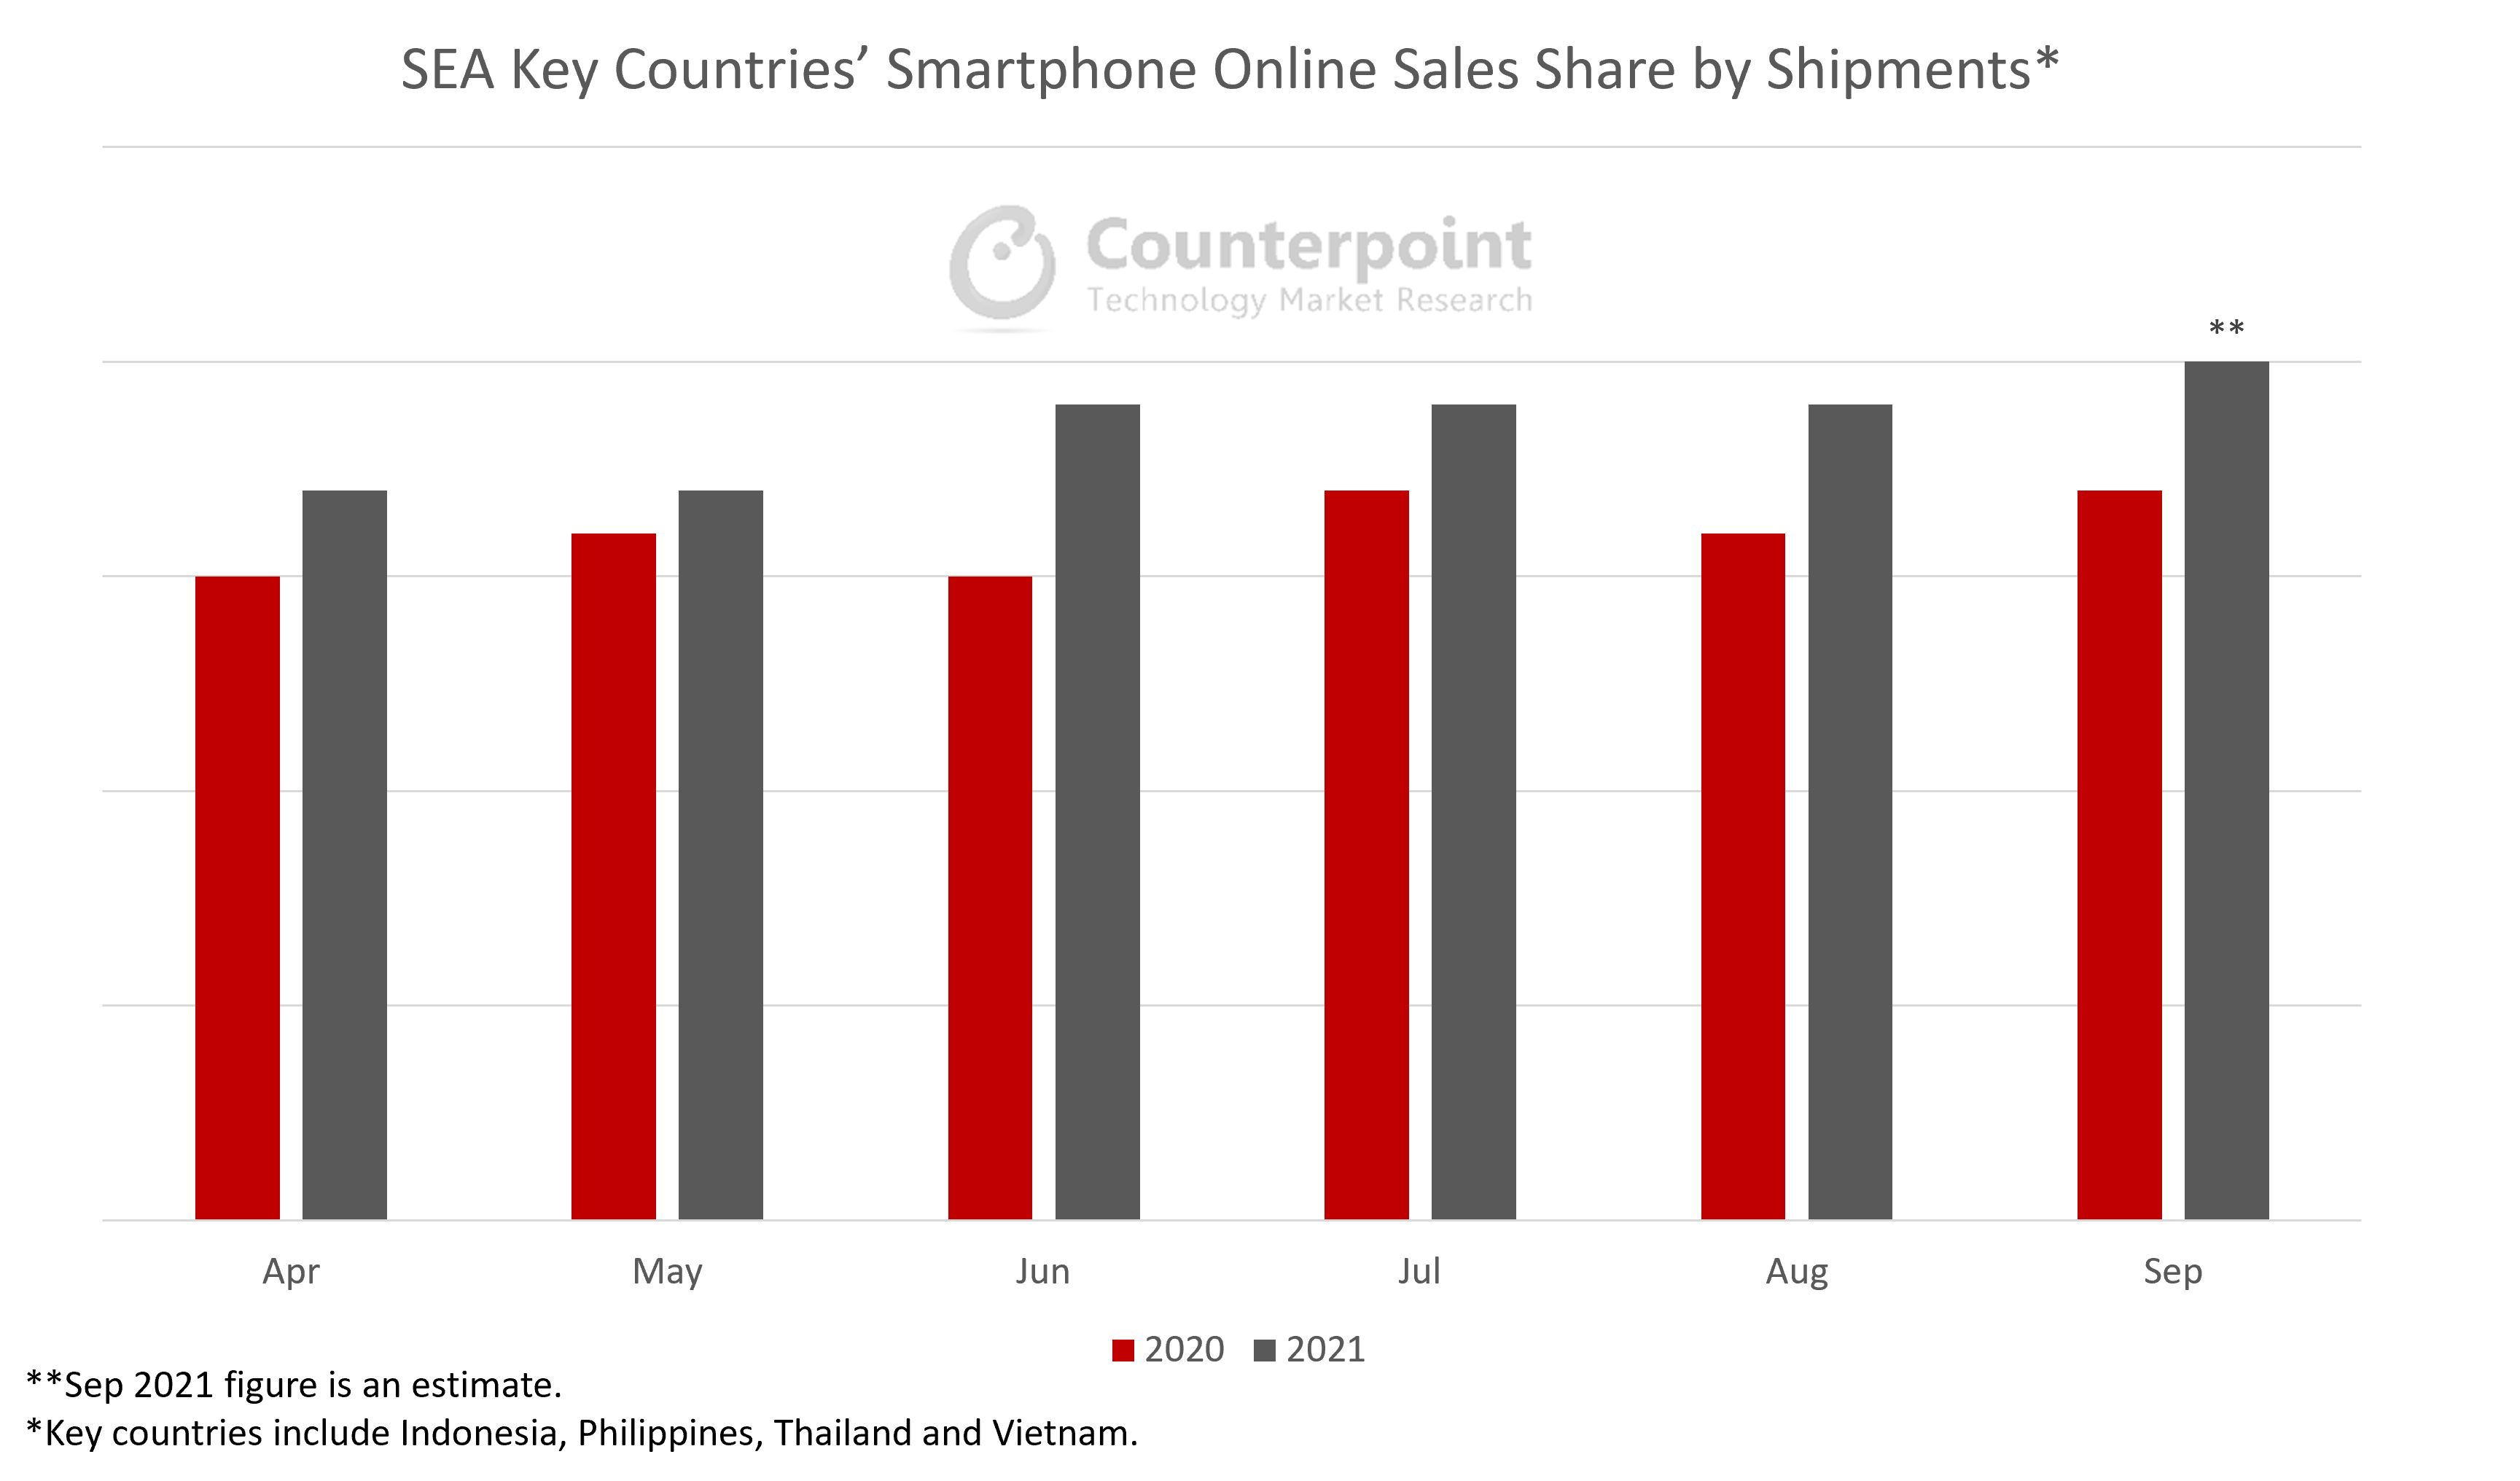 Counterpoint Research SEA Key Countries' Smartphone Online Sales Share by Shipments